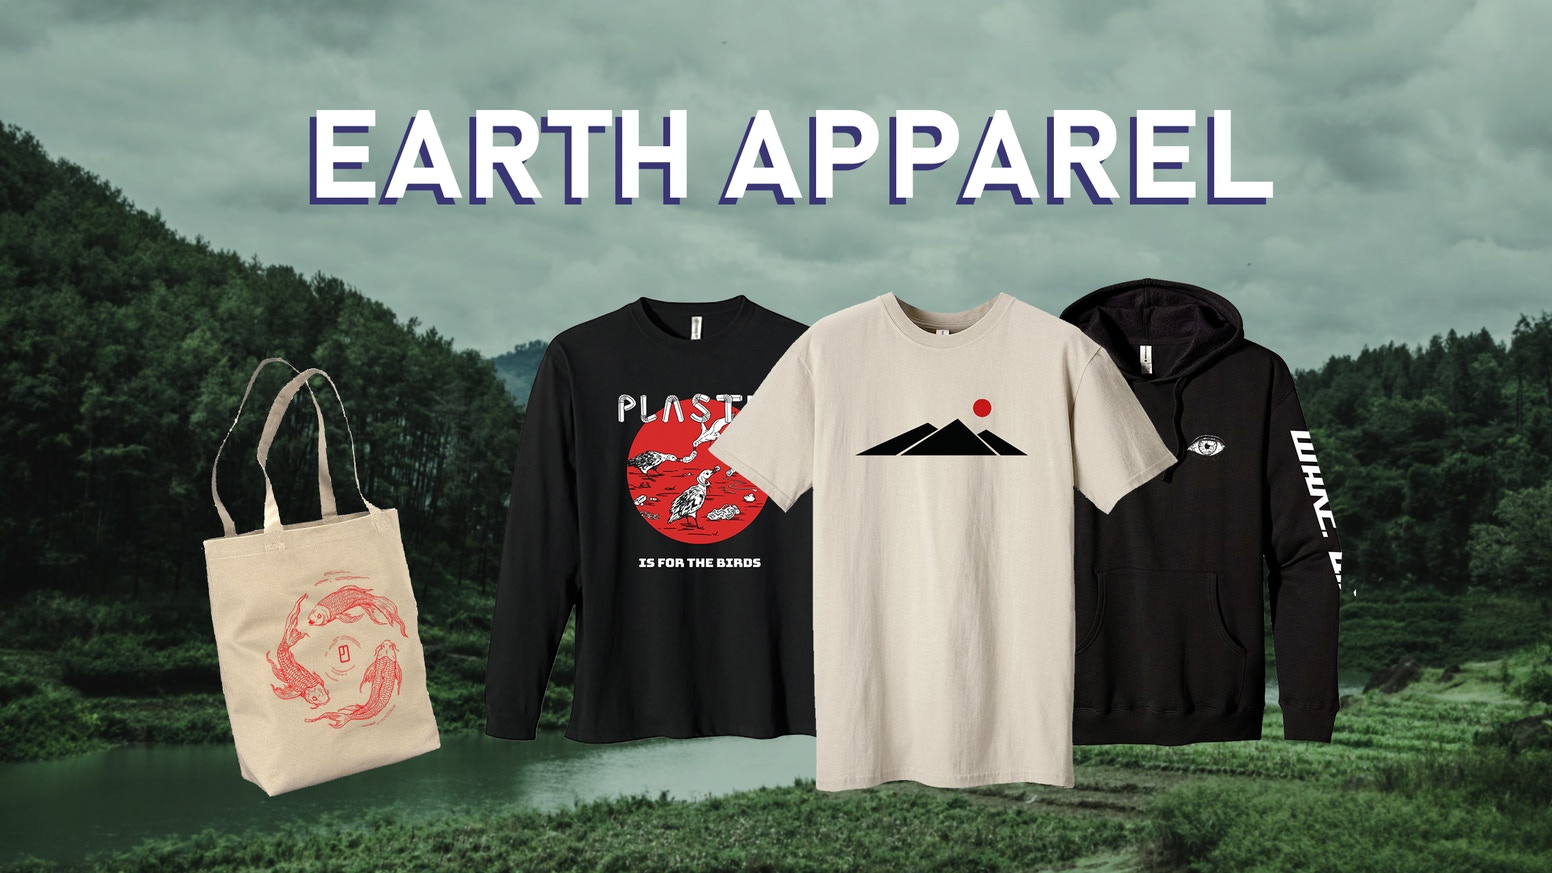 91448c610 A sustainable apparel collection featuring original designs centered around  nature and our relationship to it!